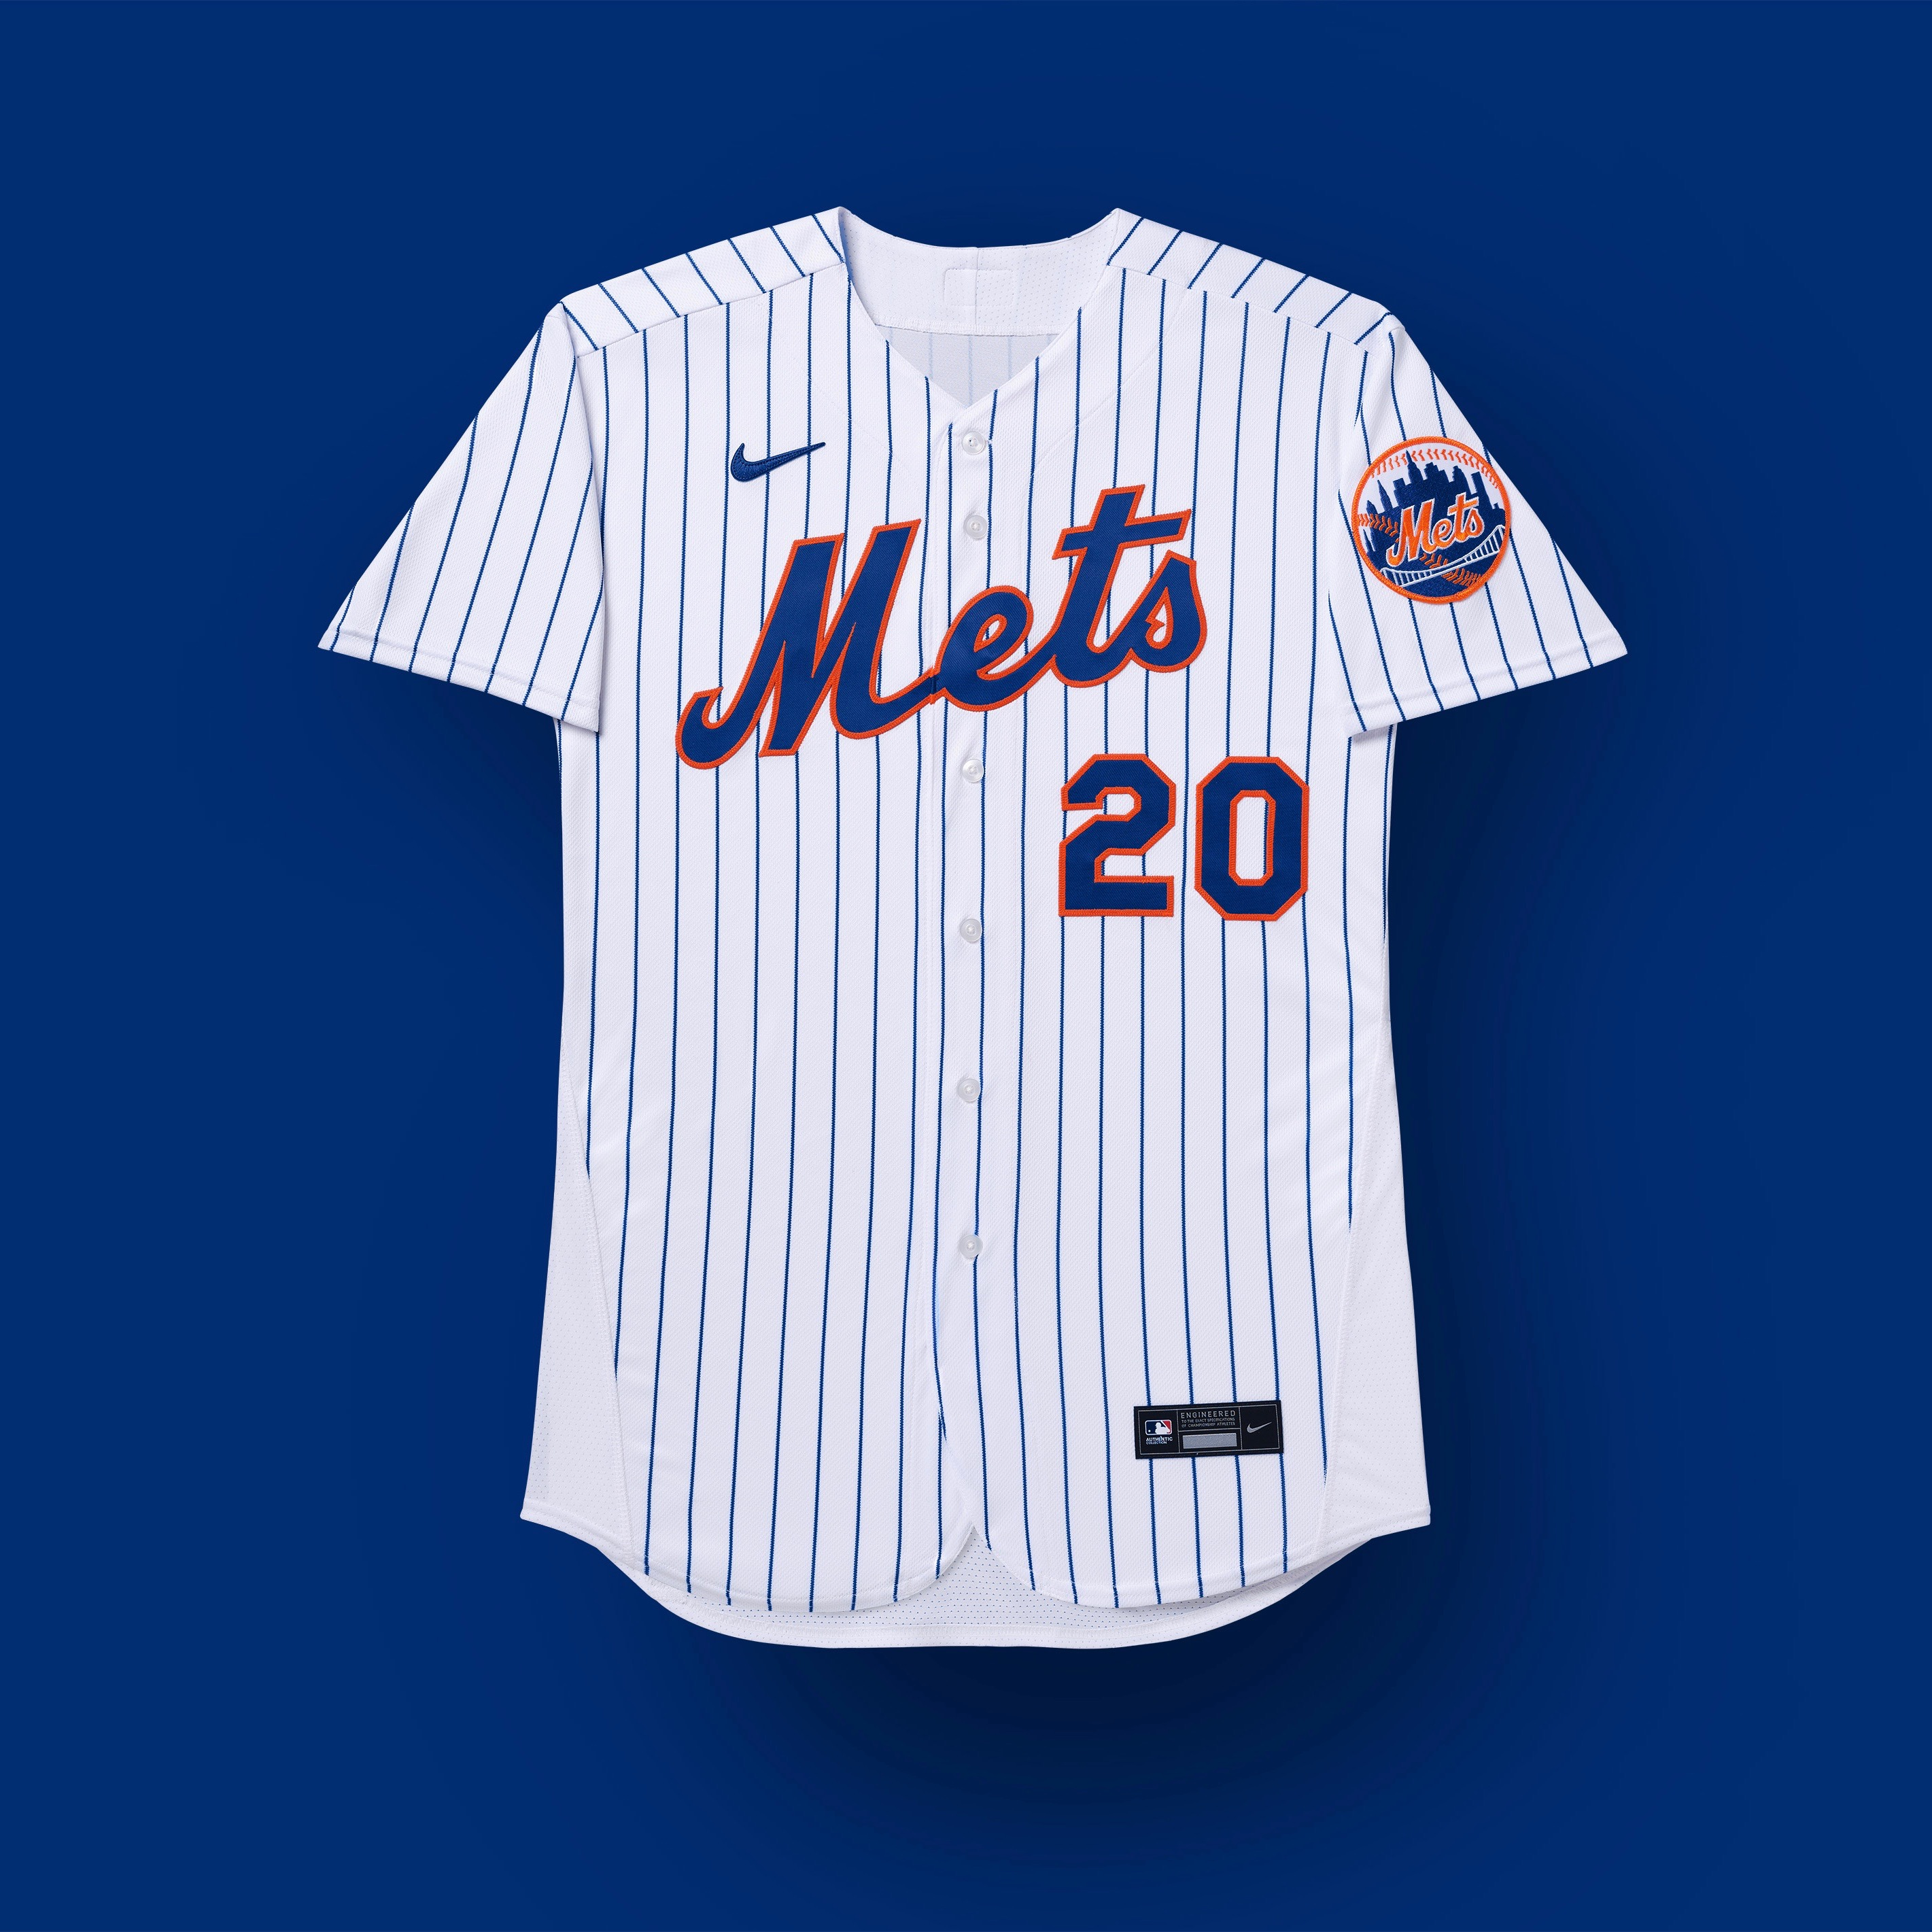 new york mets 2020 uniforms